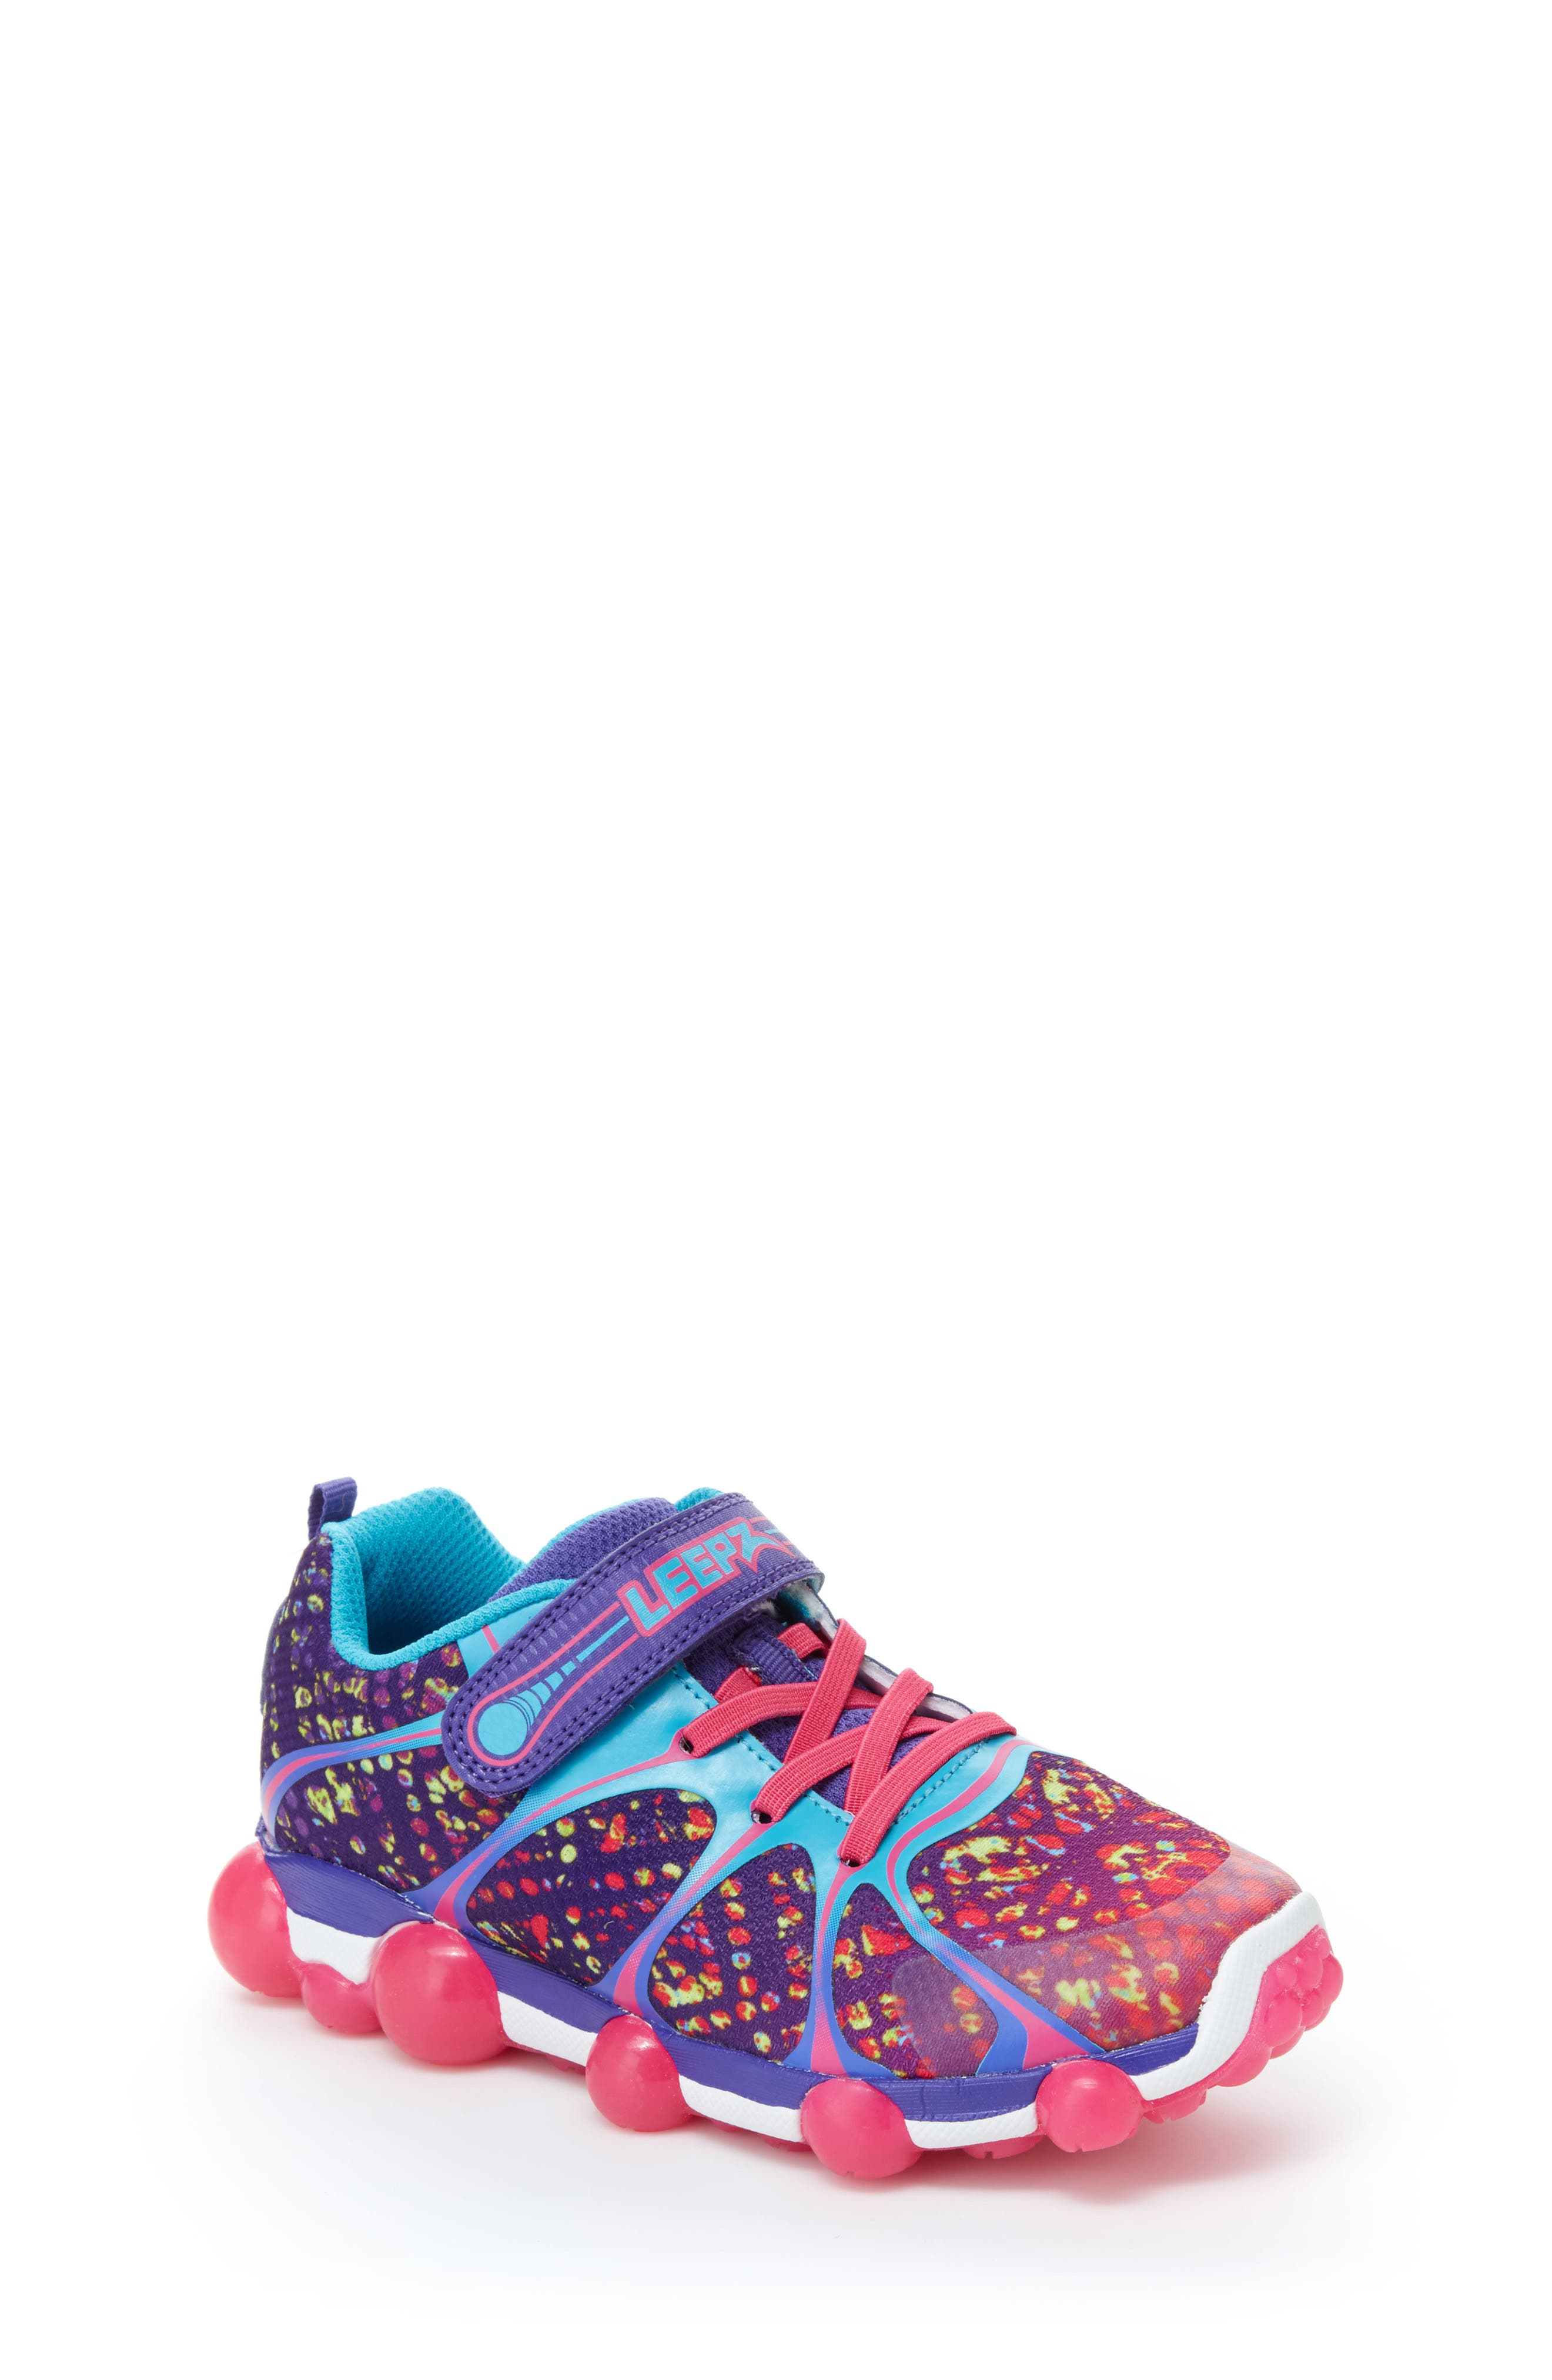 STRIDE RITE,                             'Leepz' Light-Up Sneaker,                             Main thumbnail 1, color,                             540